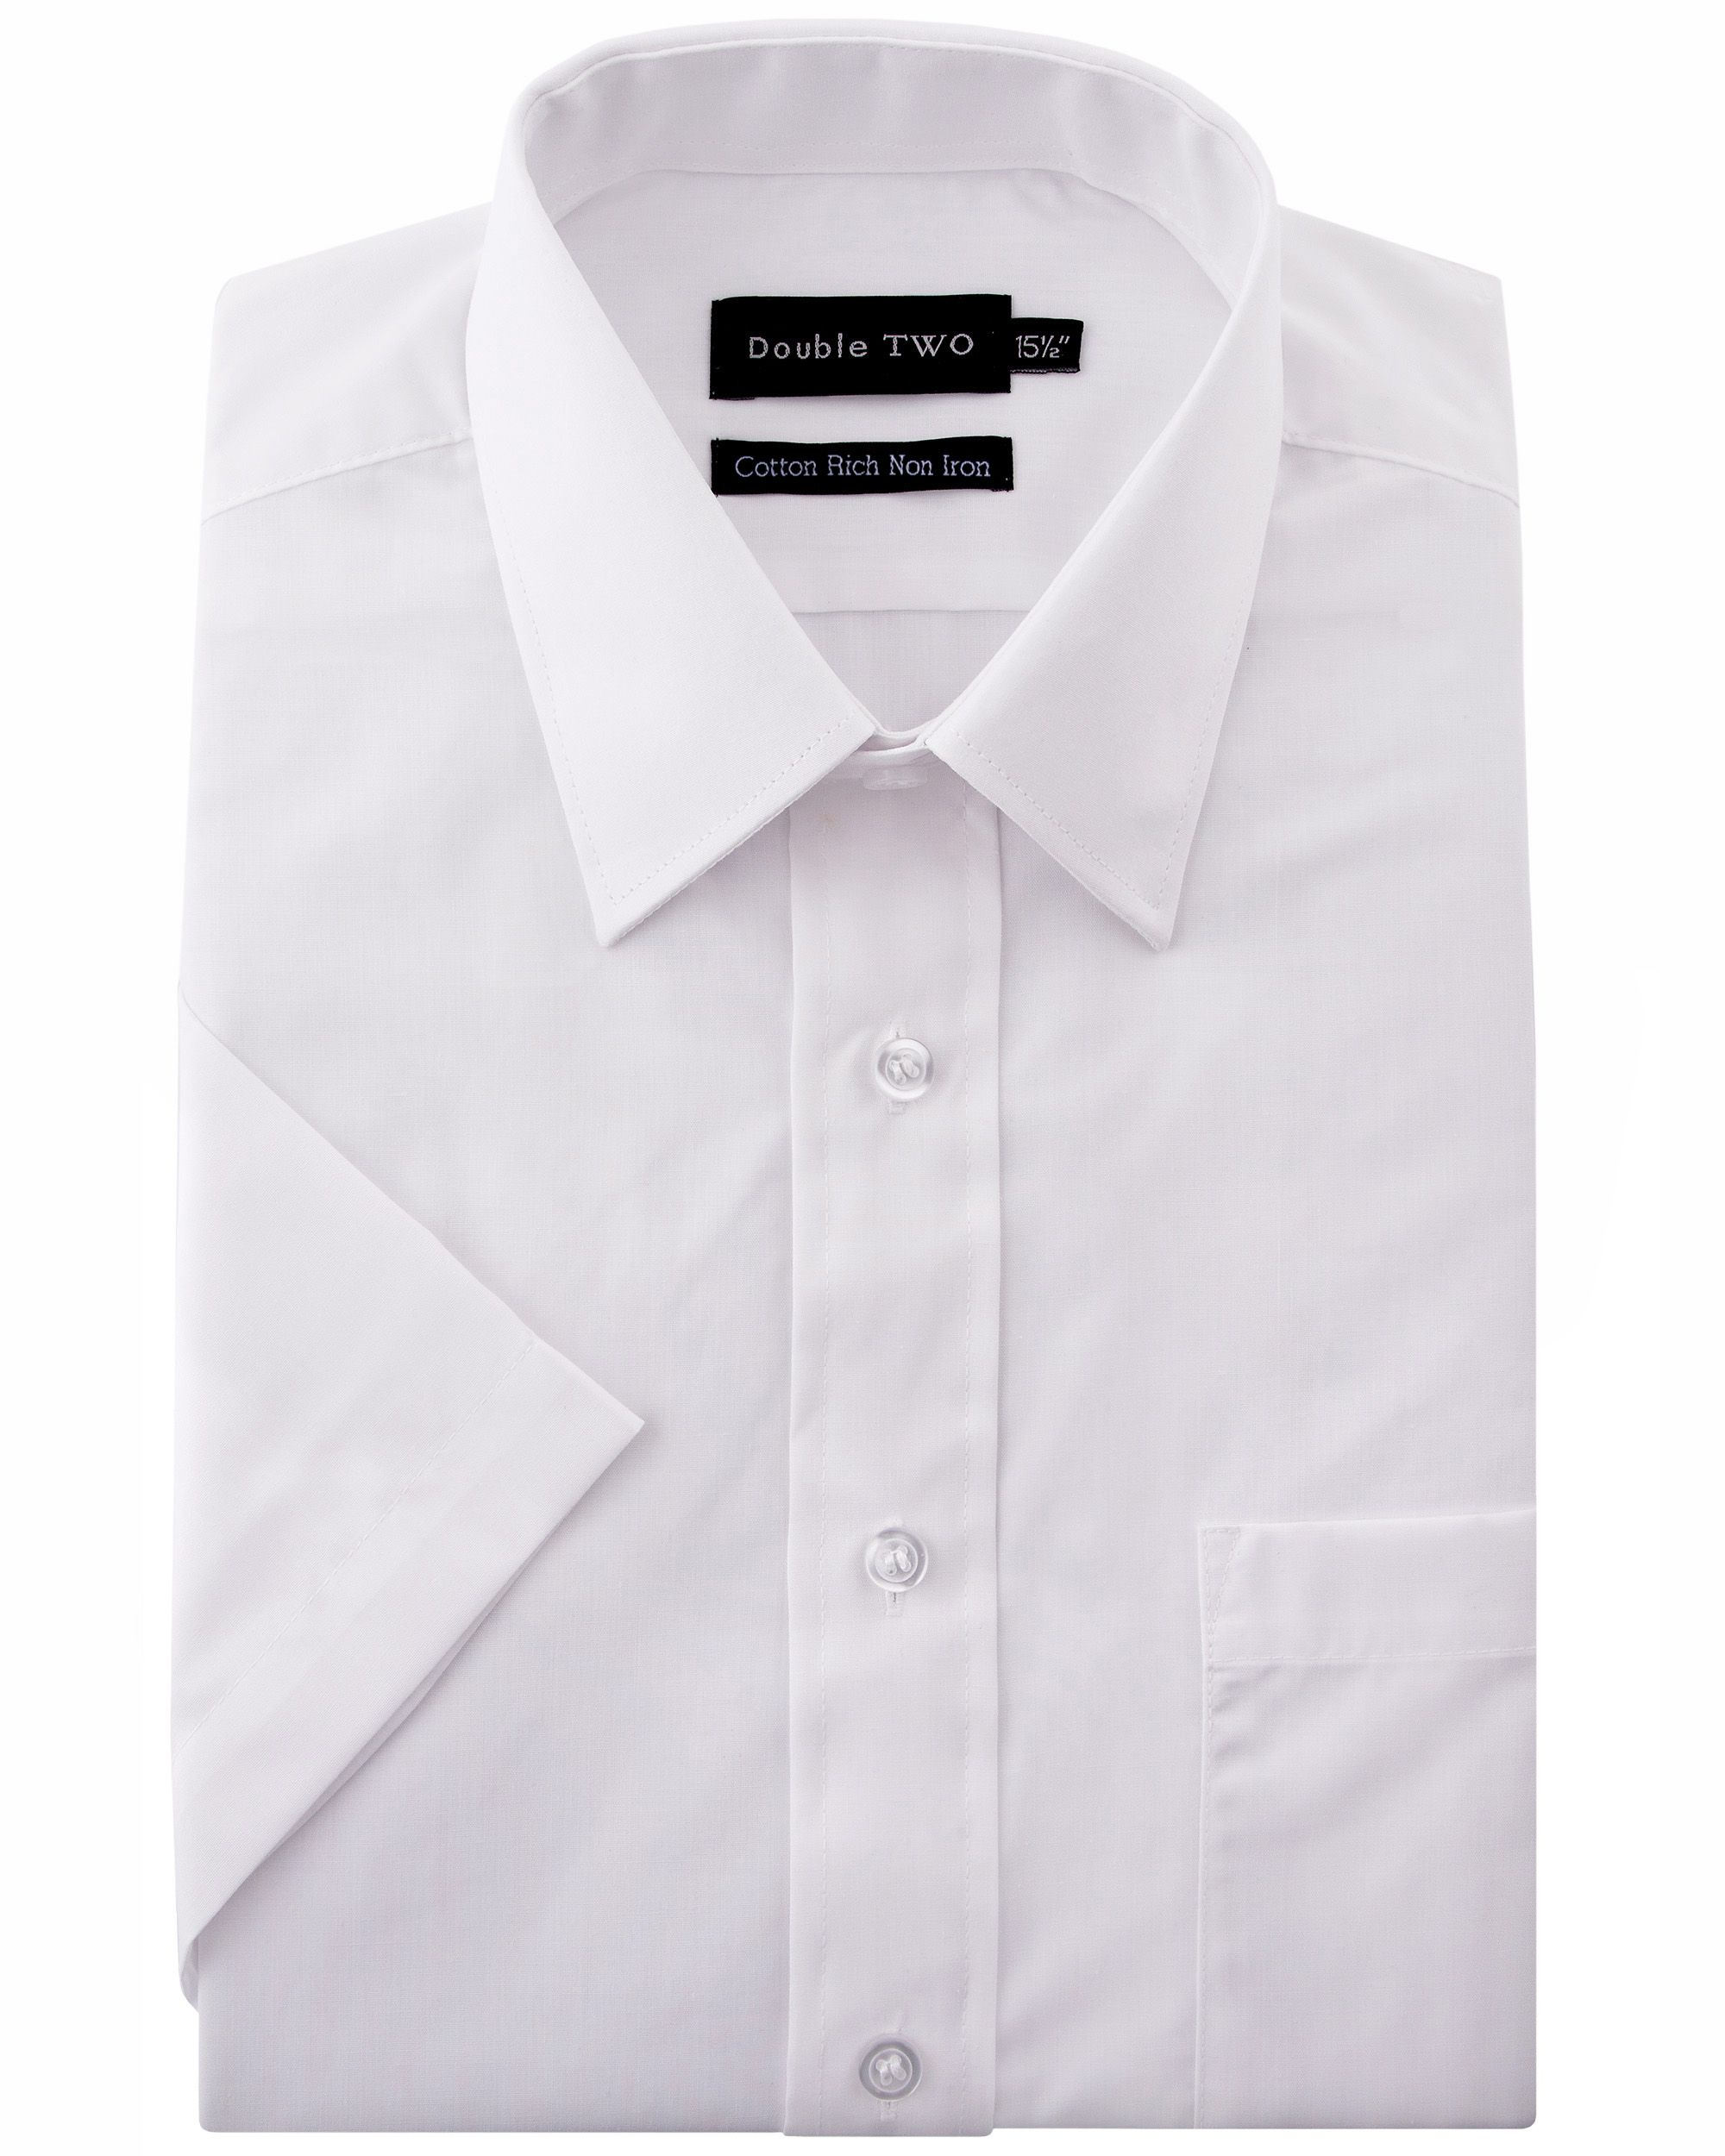 Men 39 s double two plain short sleeved non iron cotton rich for What is a non iron shirt